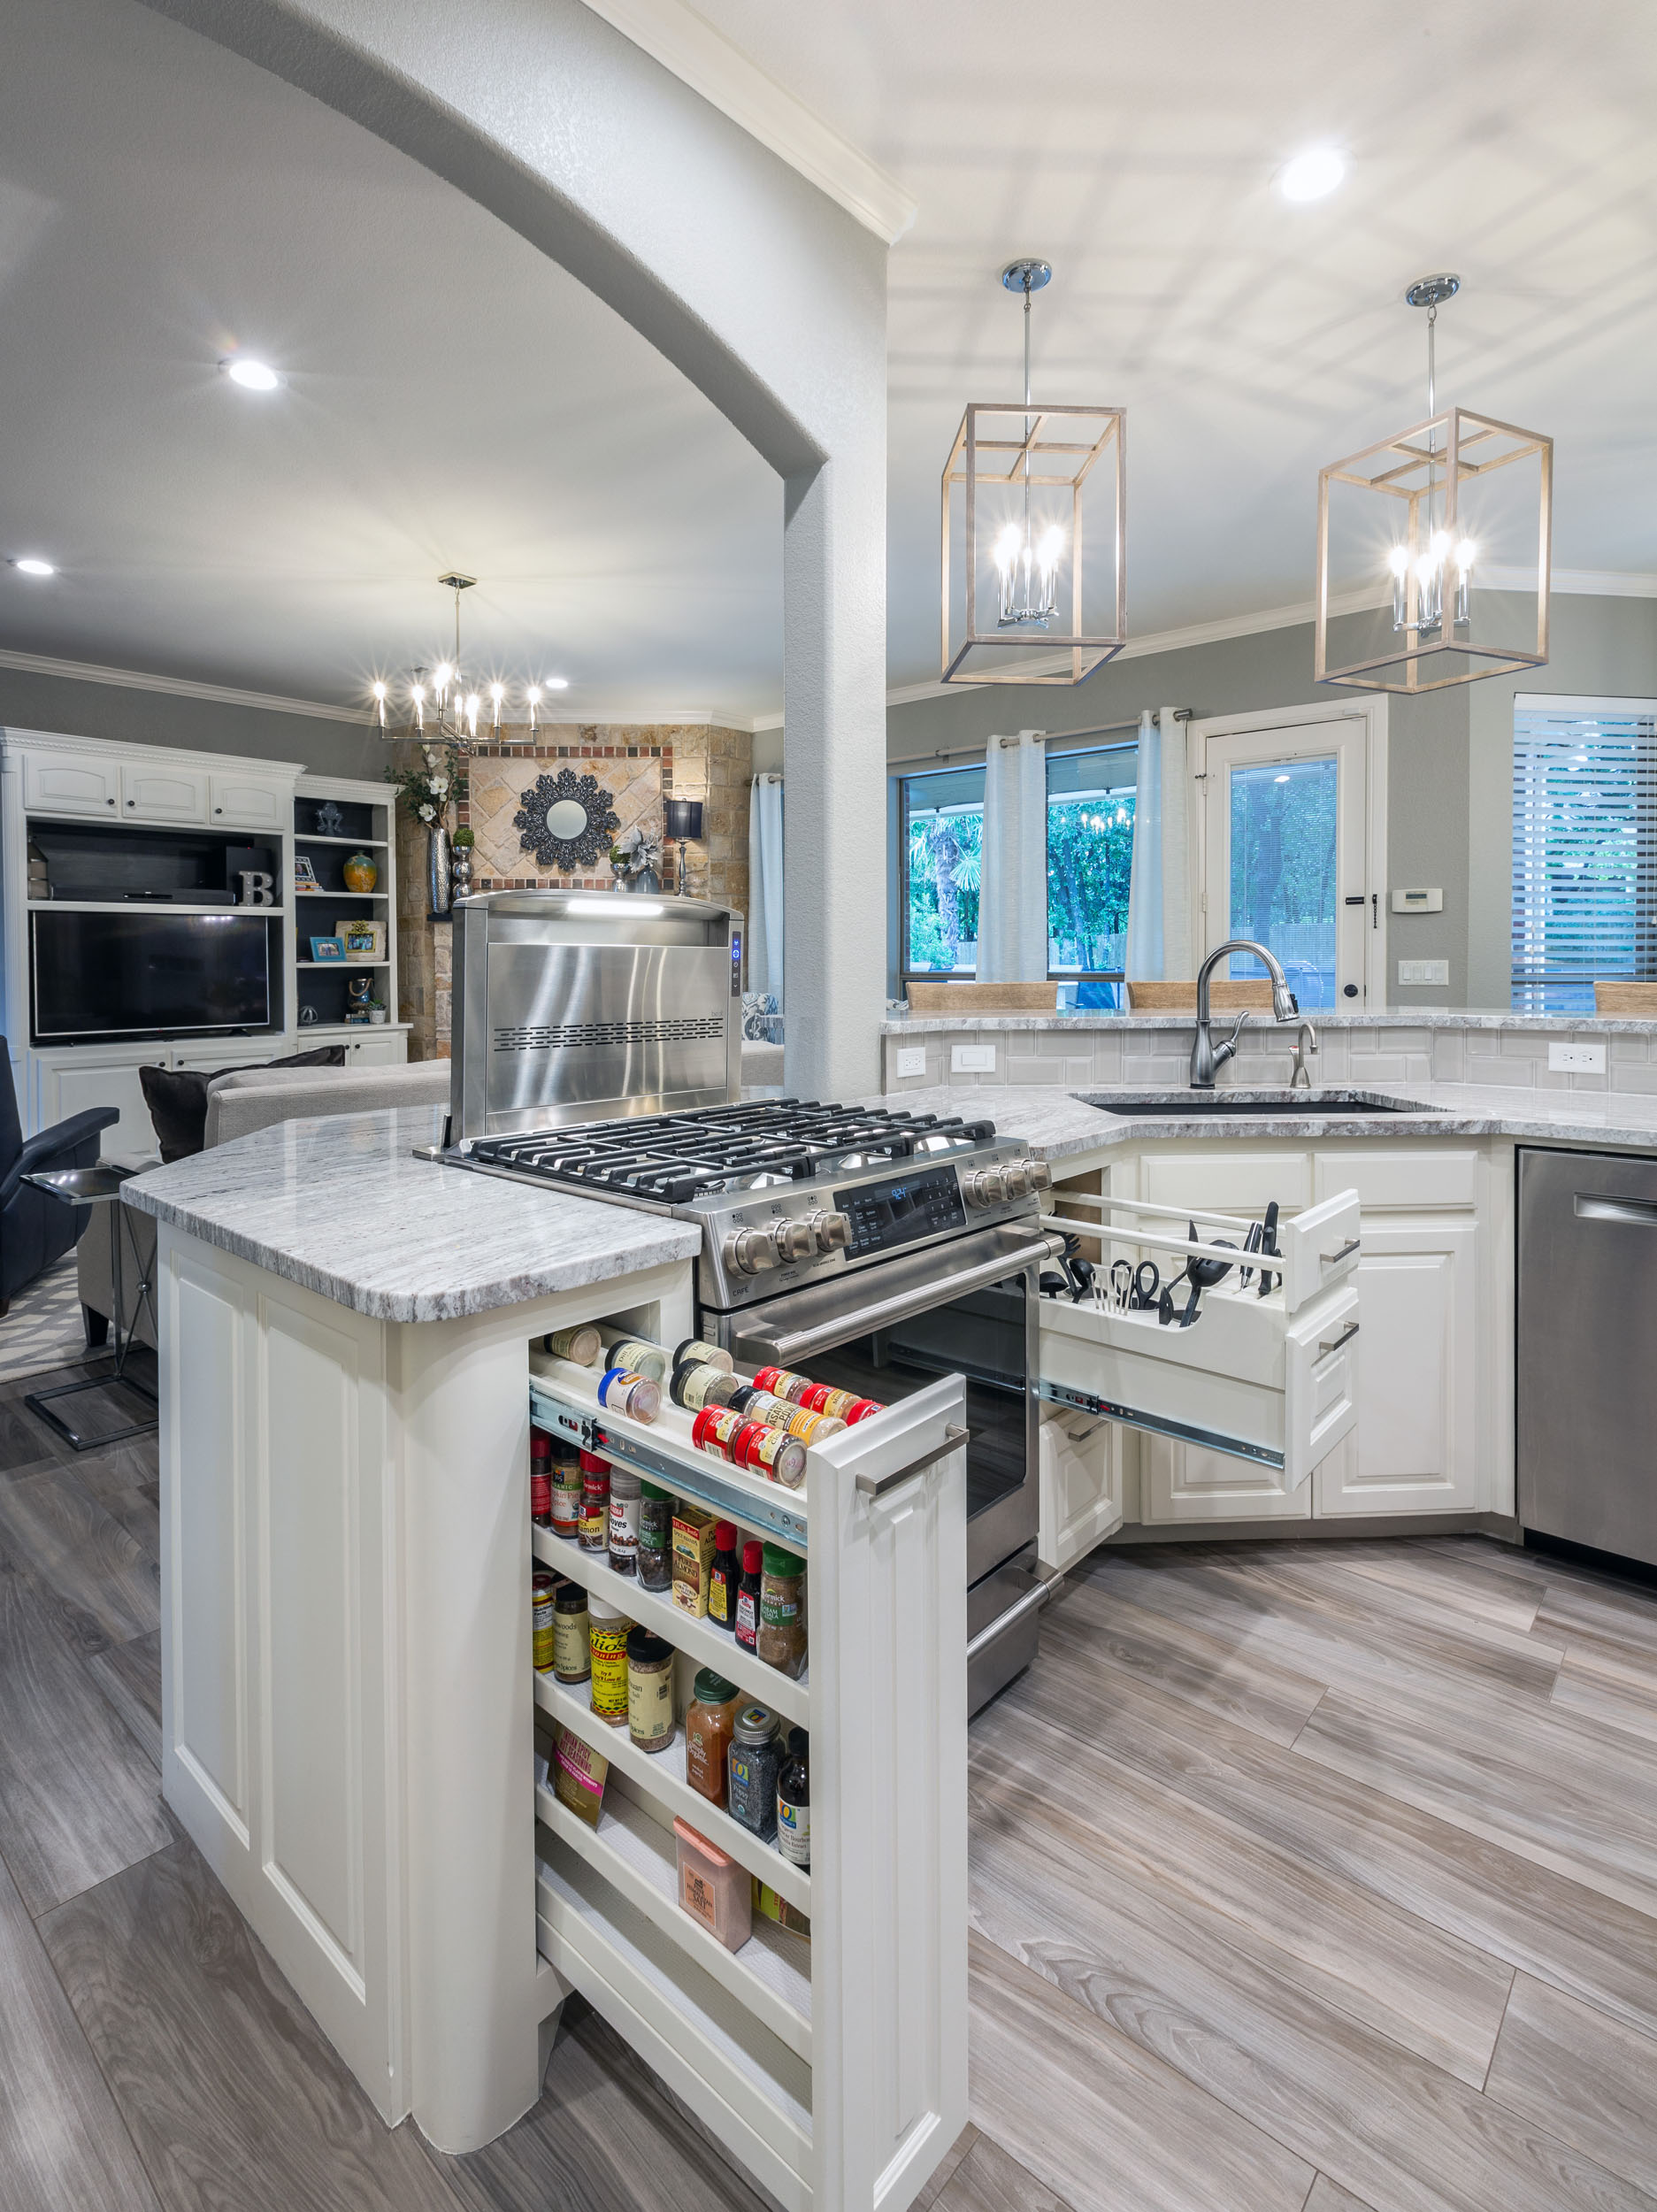 Do your home maintenance like in this beautiful kitchen facelift